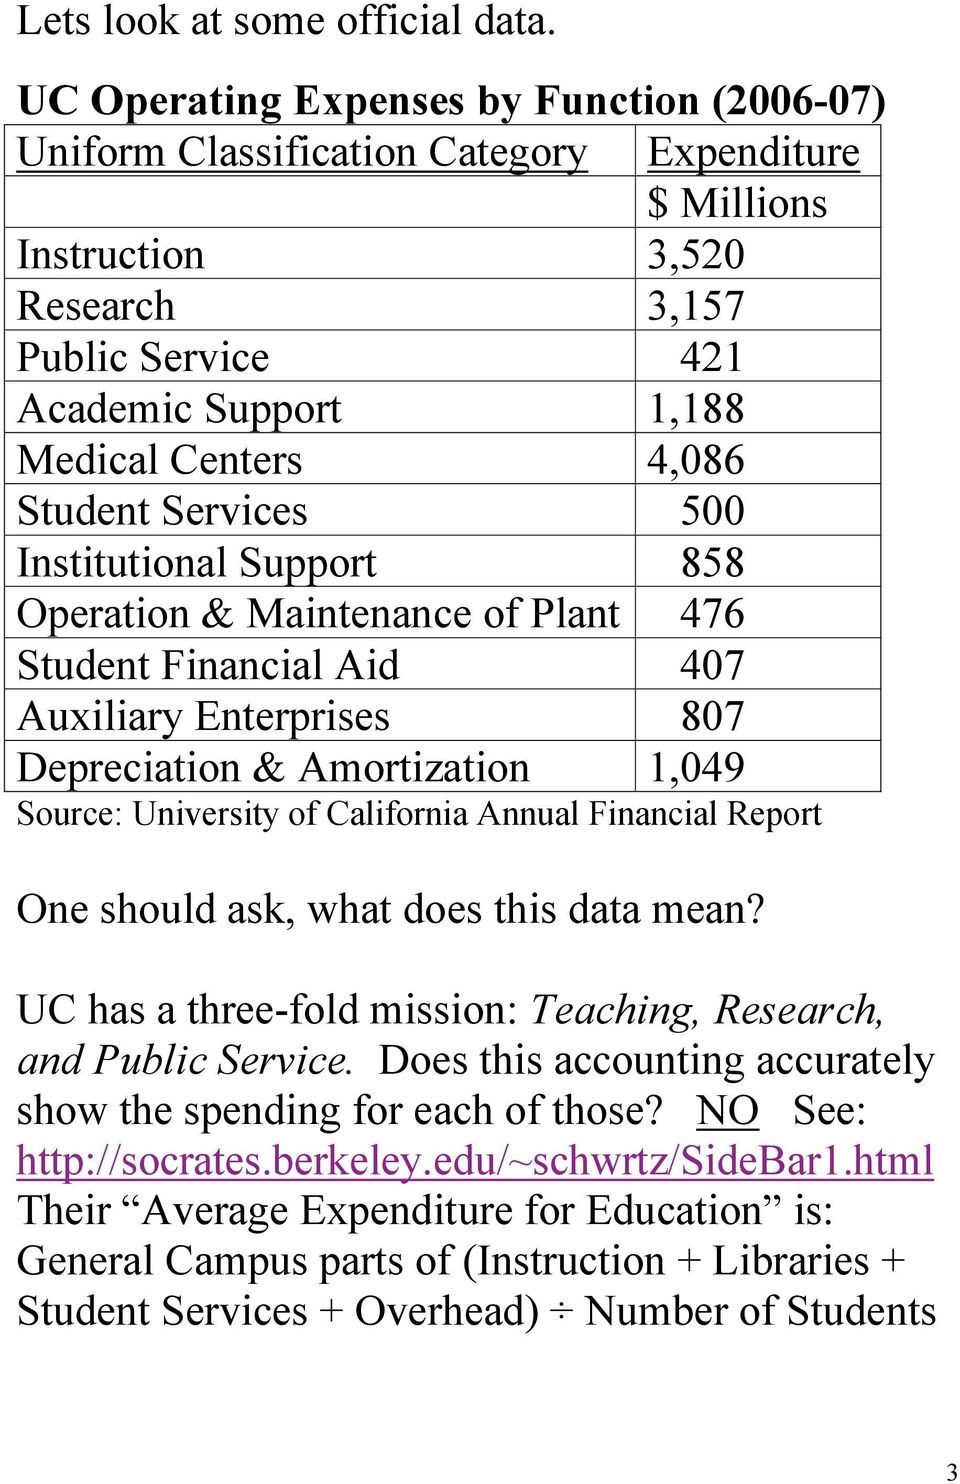 Student Services 500 Institutional Support 858 Operation & Maintenance of Plant 476 Student Financial Aid 407 Auxiliary Enterprises 807 Depreciation & Amortization 1,049 Source: University of